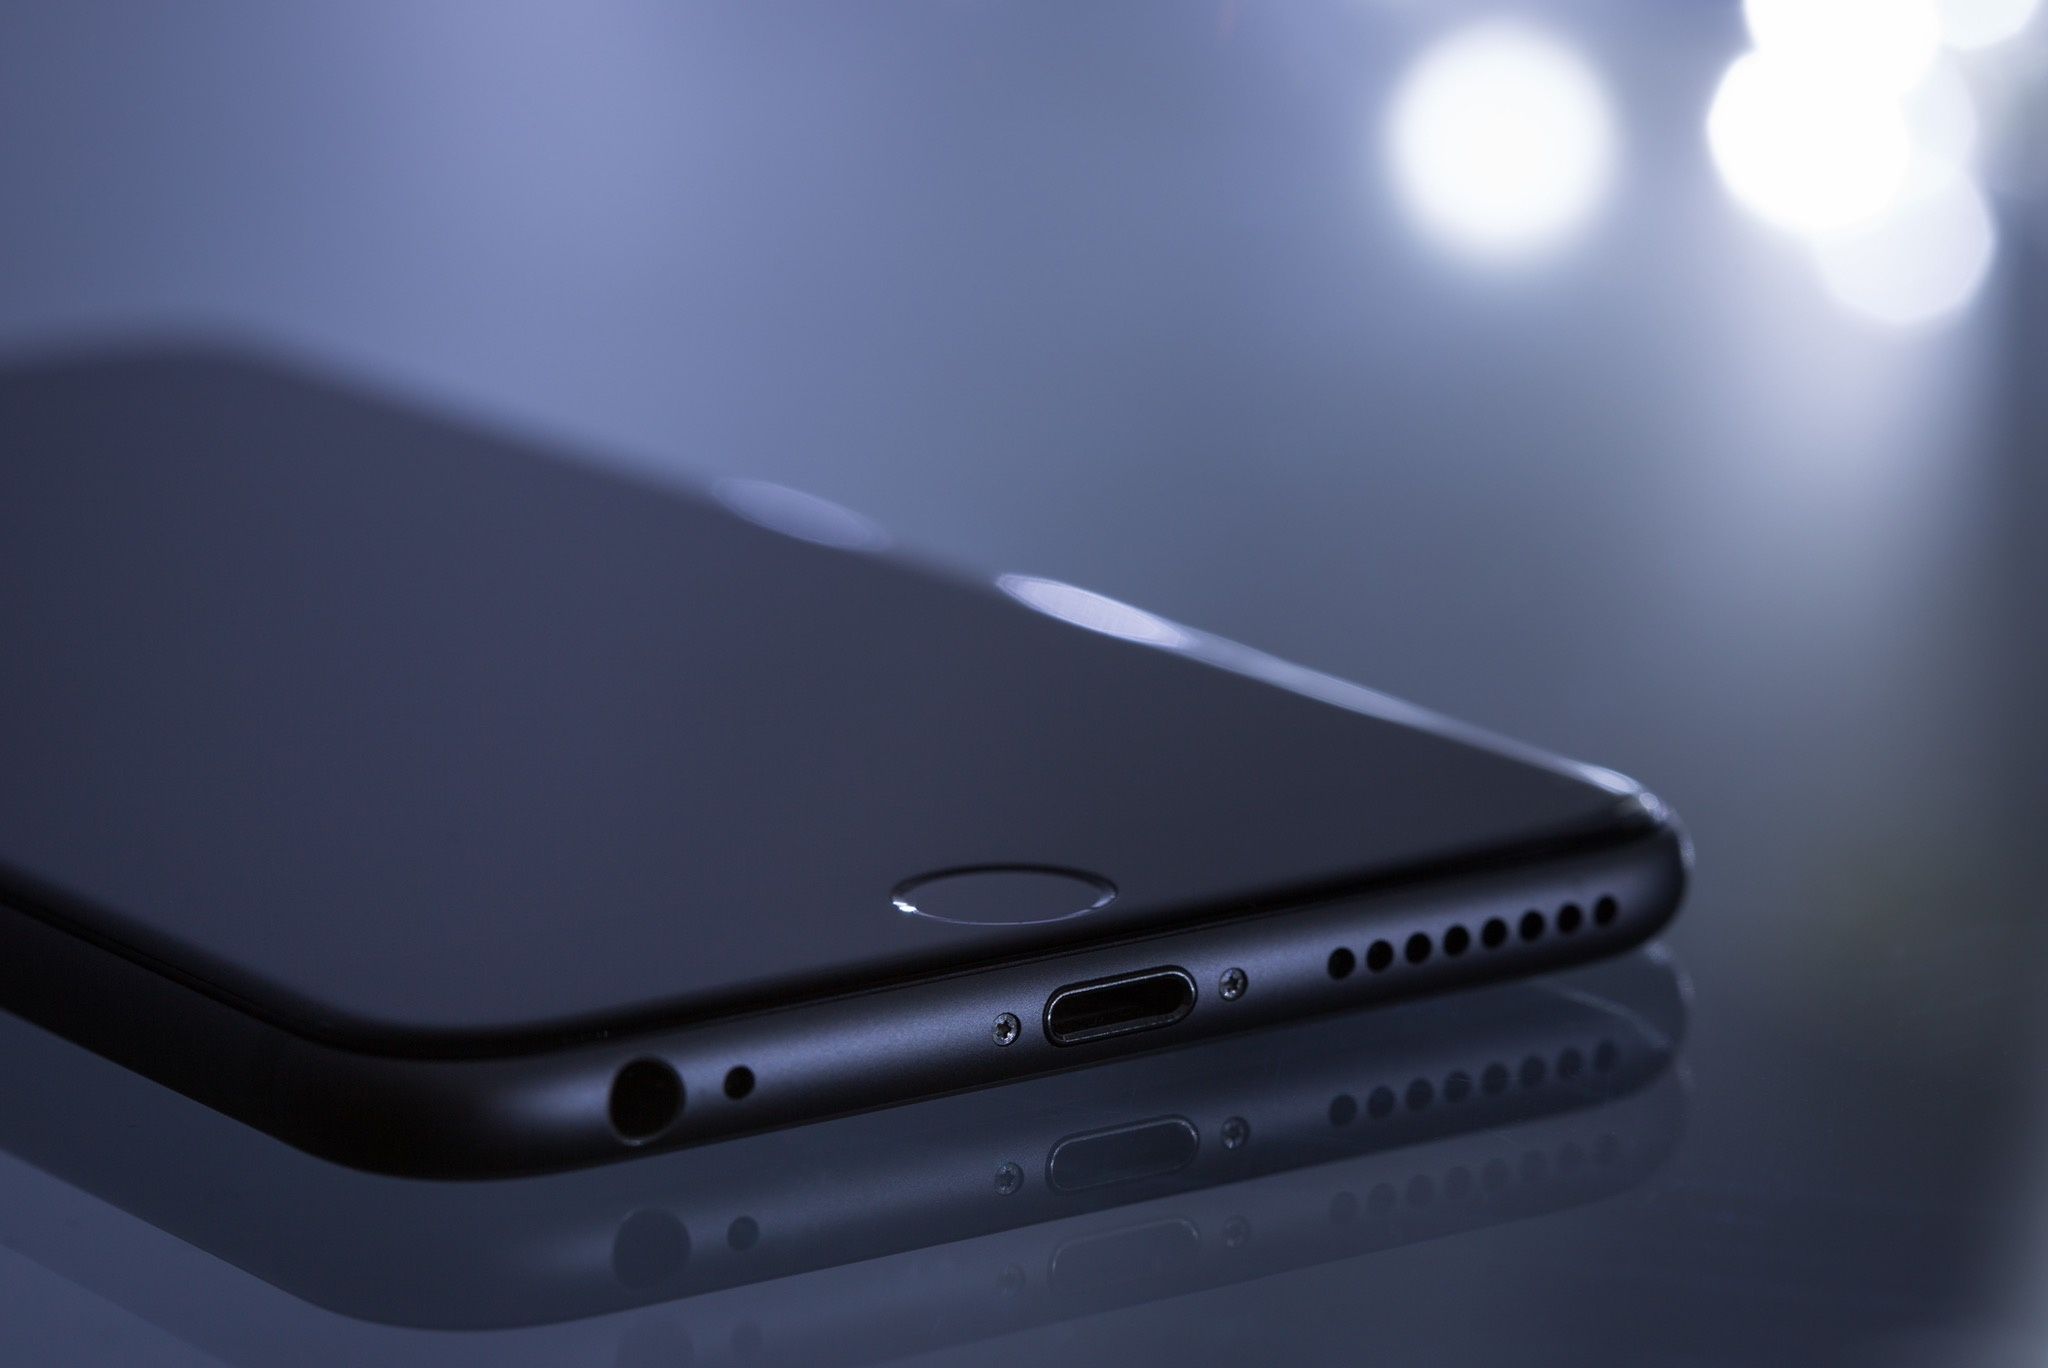 Gently used iPhone 6 is best selling mobile device on Swappa